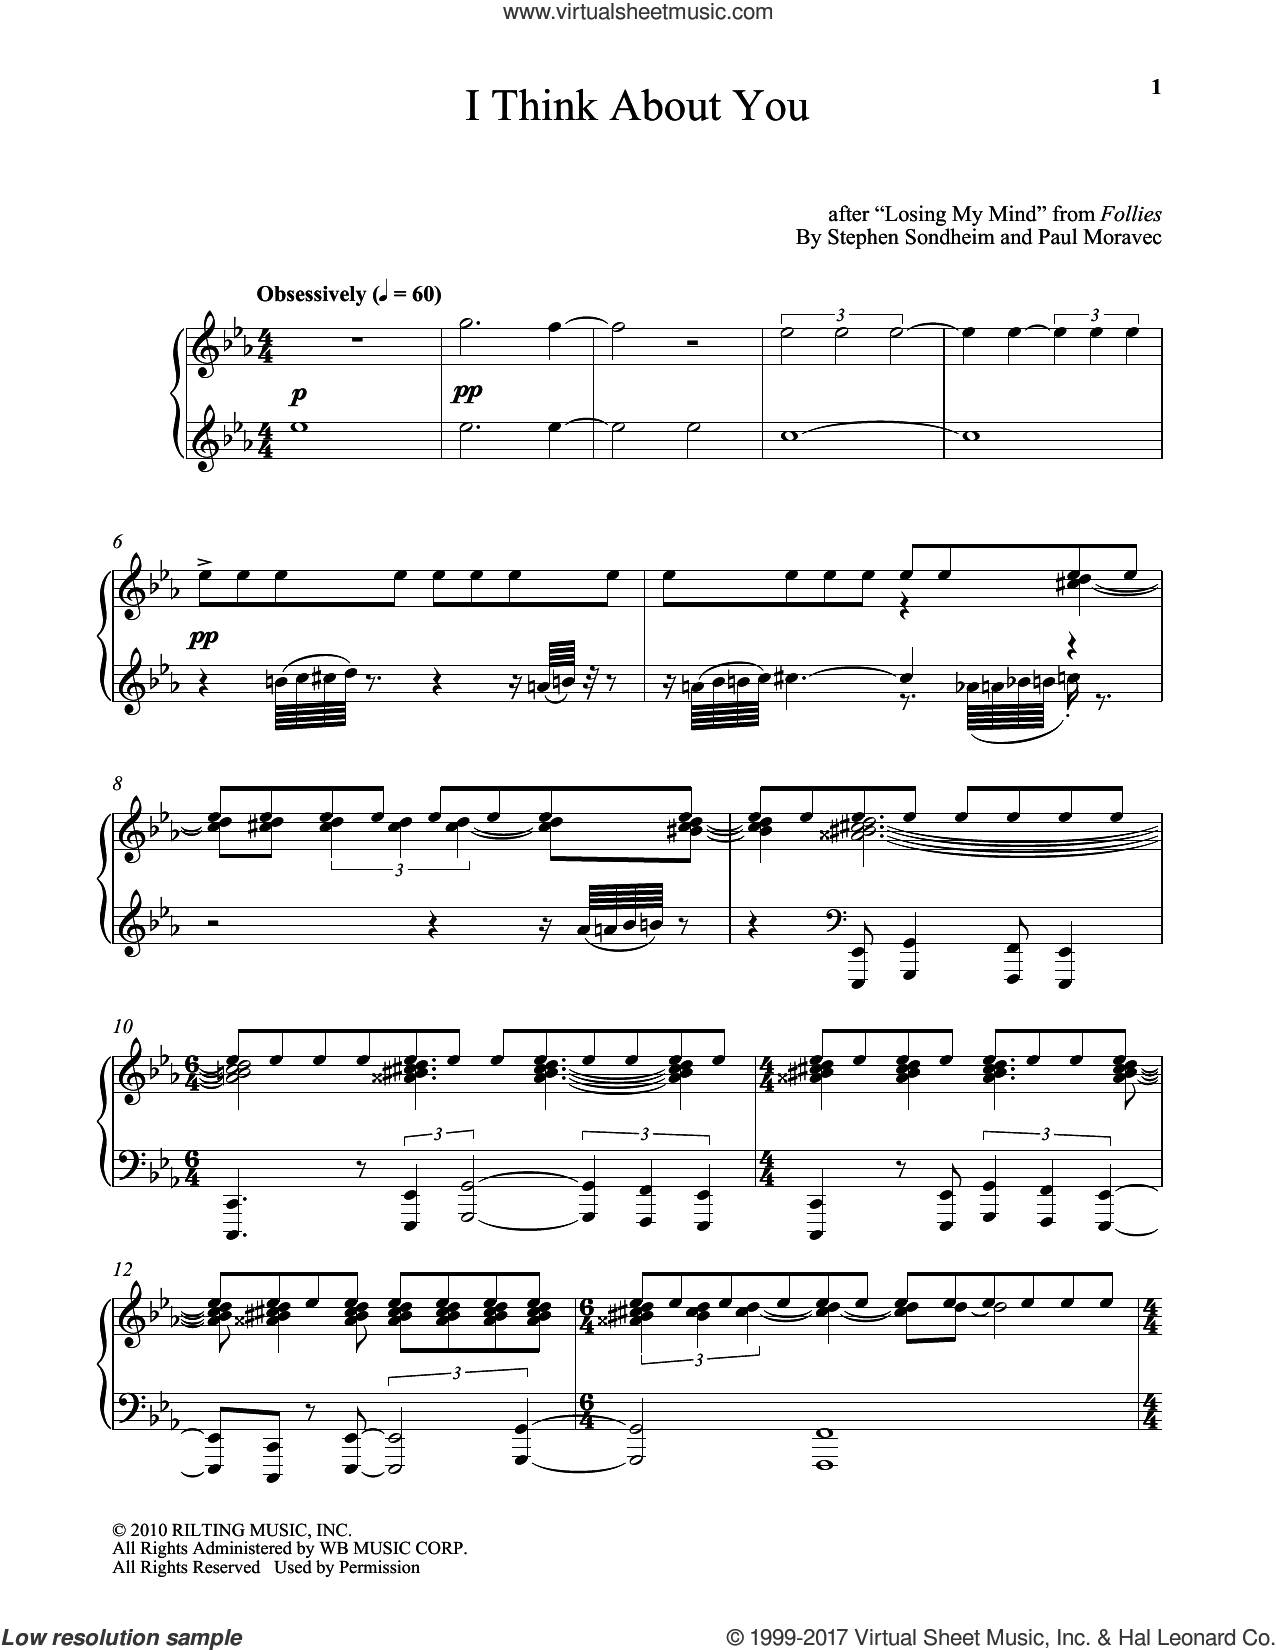 I Think About You sheet music for piano solo by Stephen Sondheim and Paul Moravec, intermediate skill level